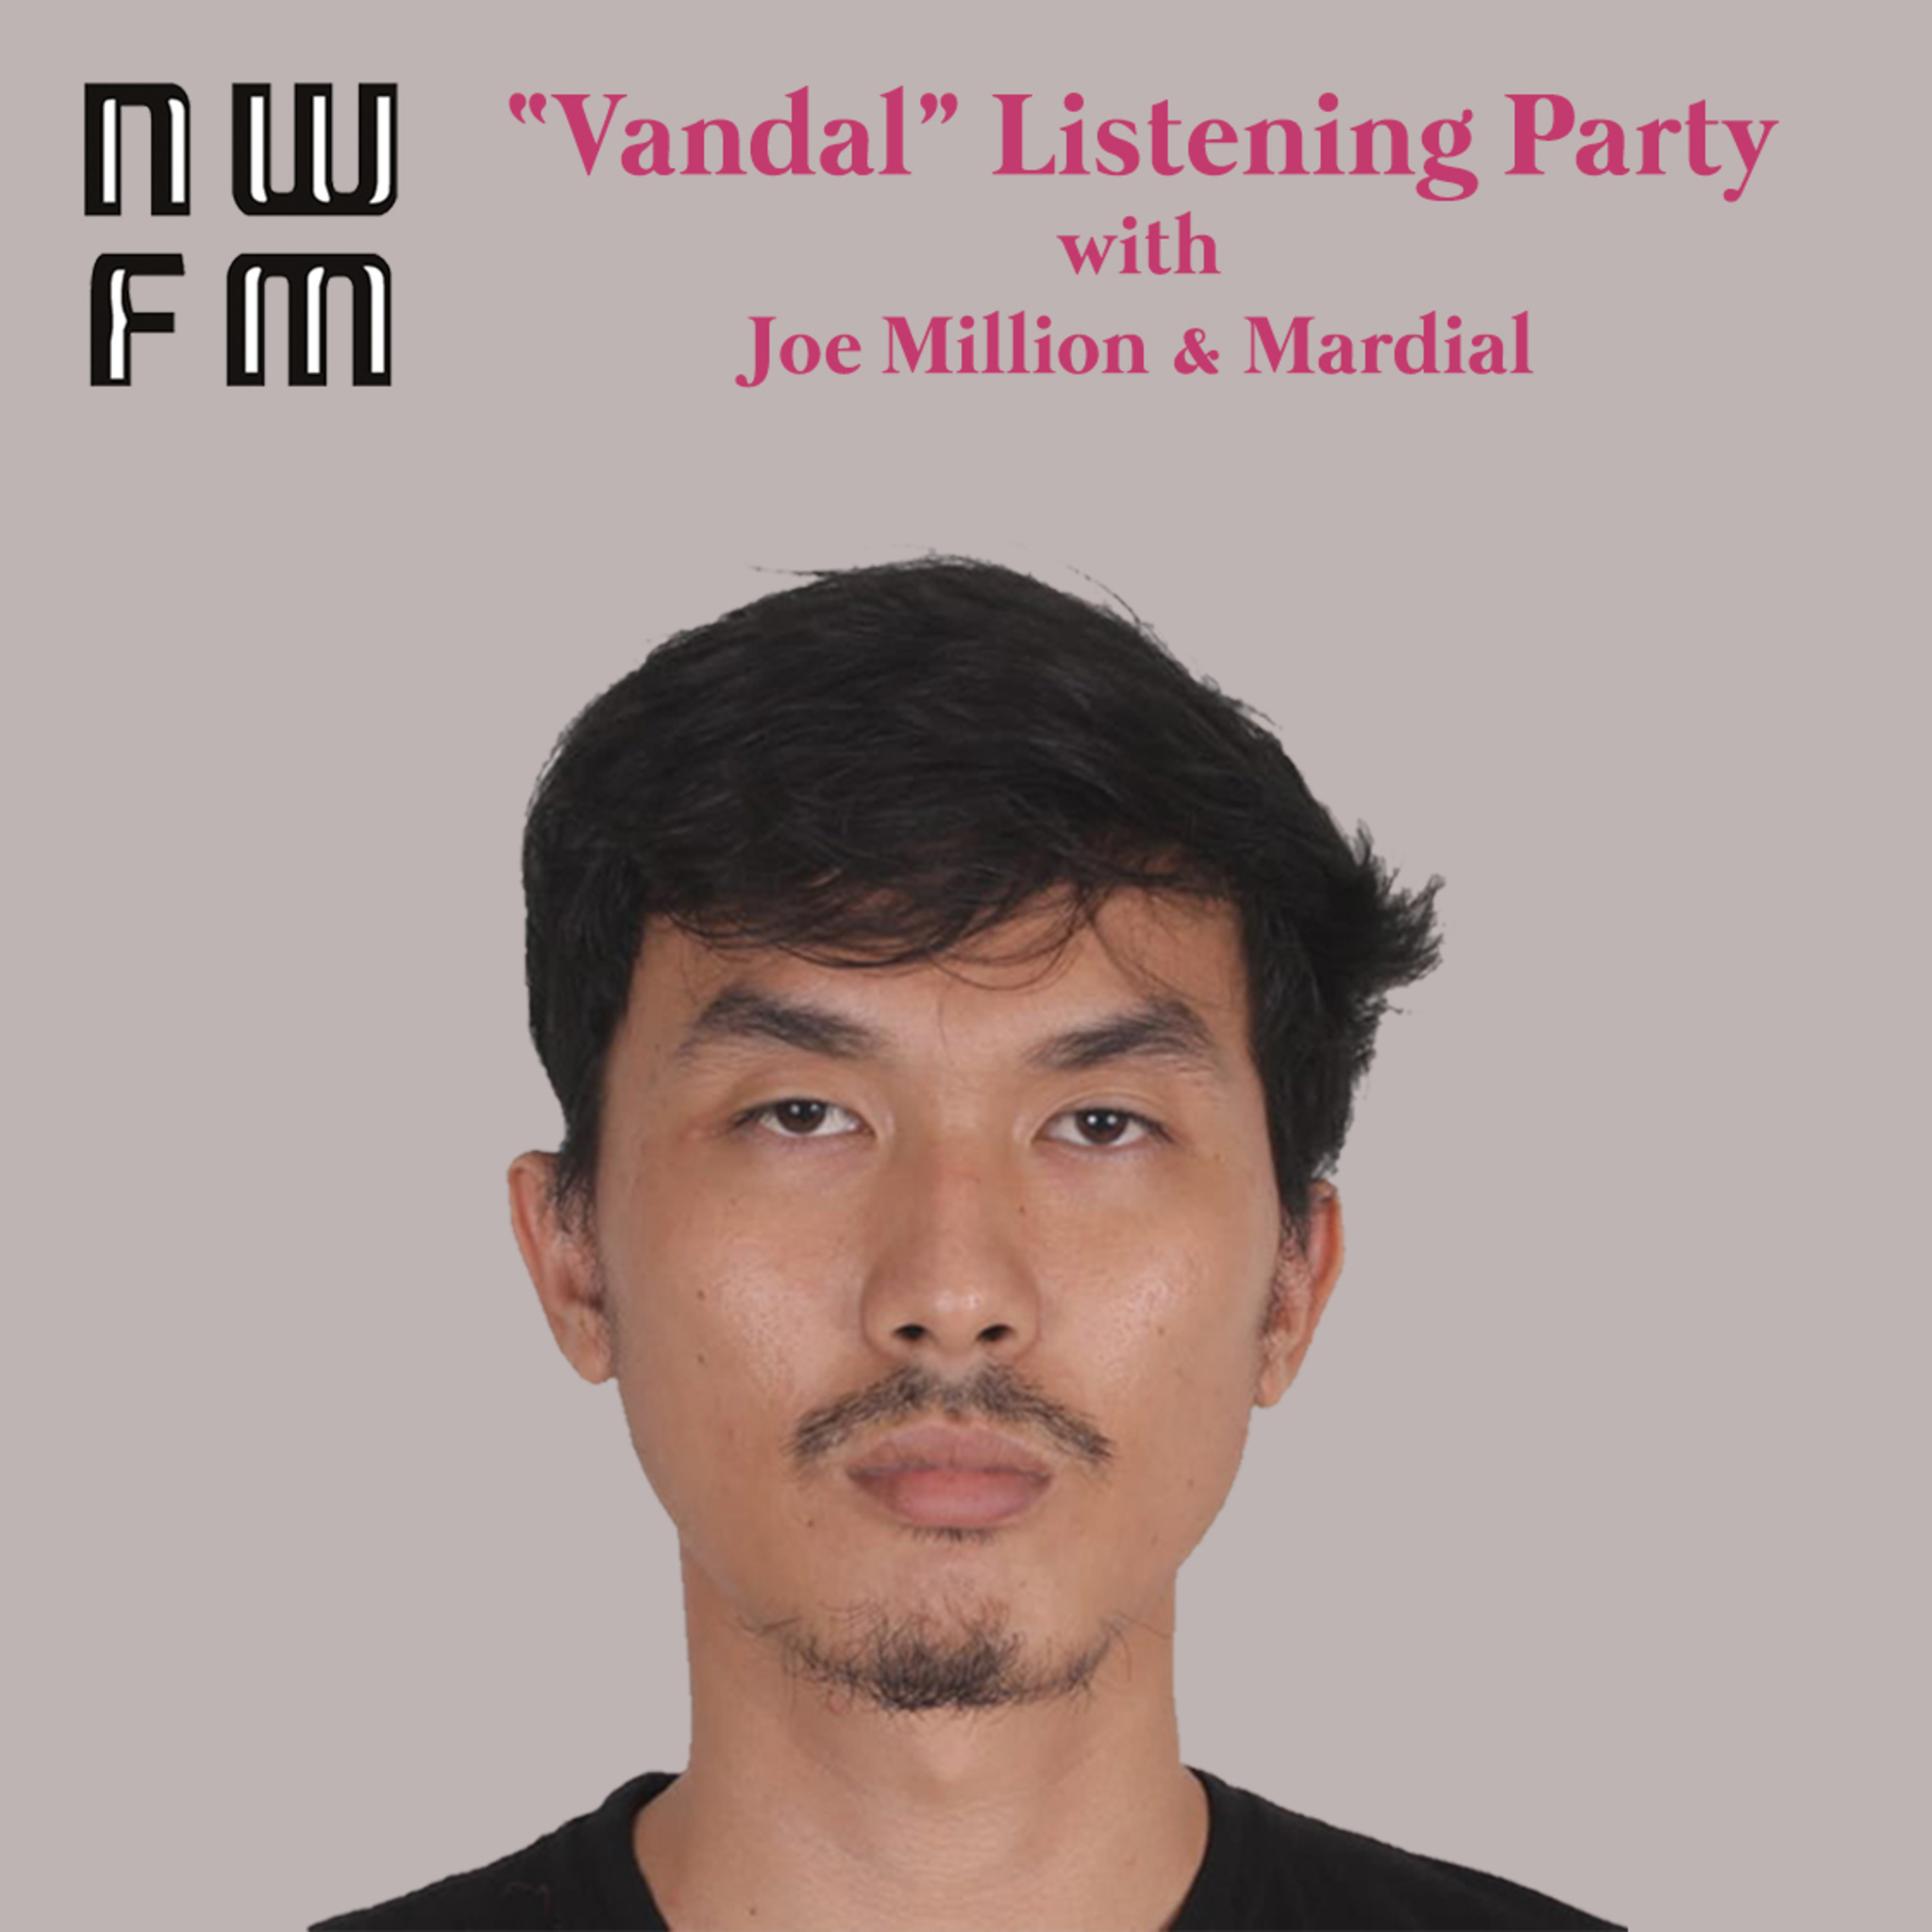 NWFM: Joe Million & Mardial (Part 2)